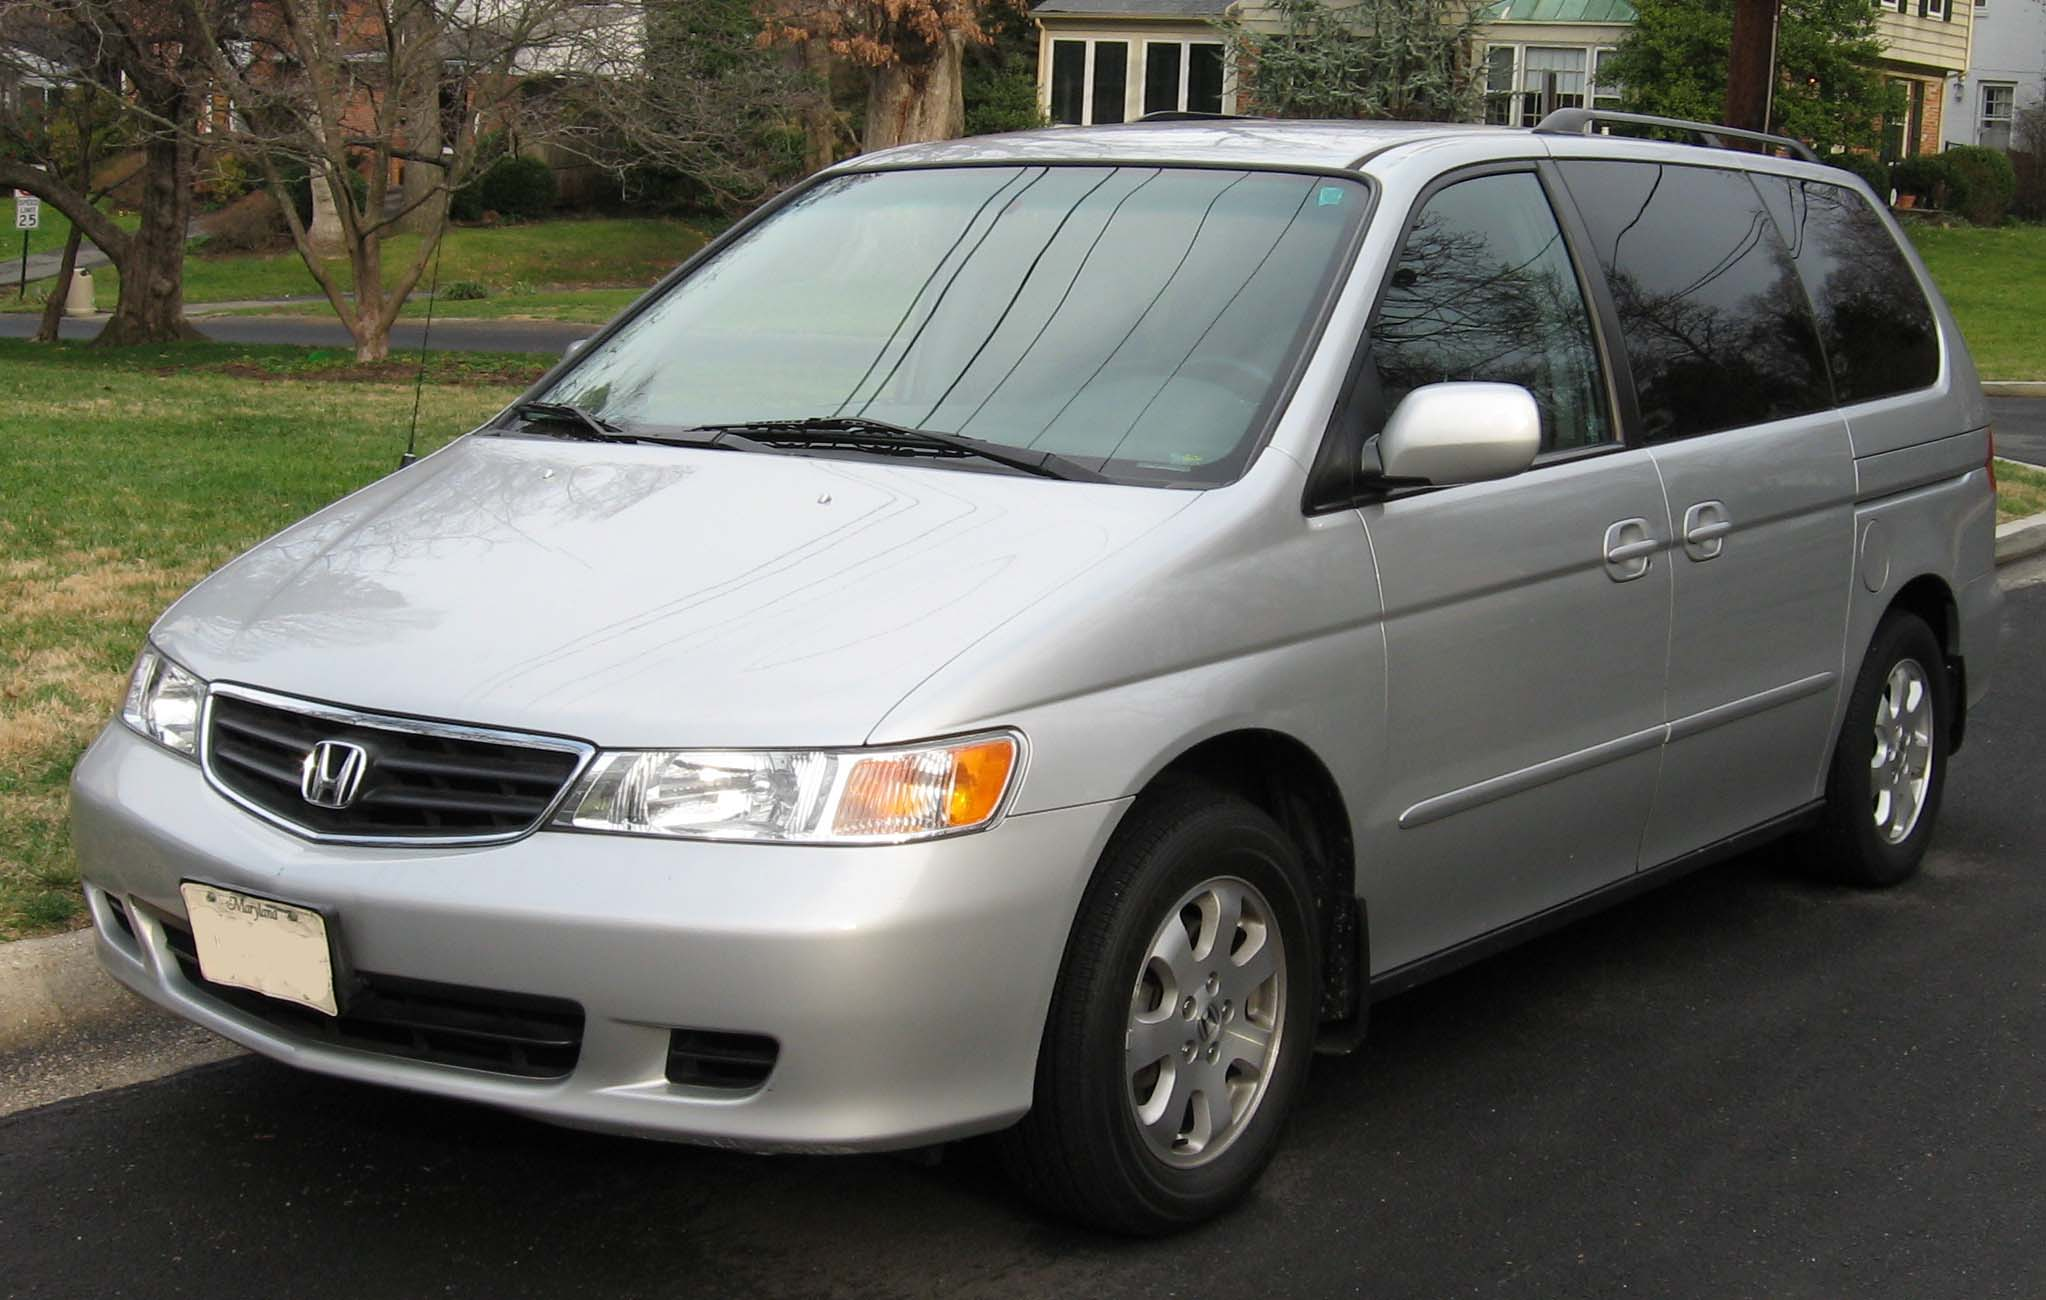 2003 honda odyssey information and photos momentcar. Black Bedroom Furniture Sets. Home Design Ideas